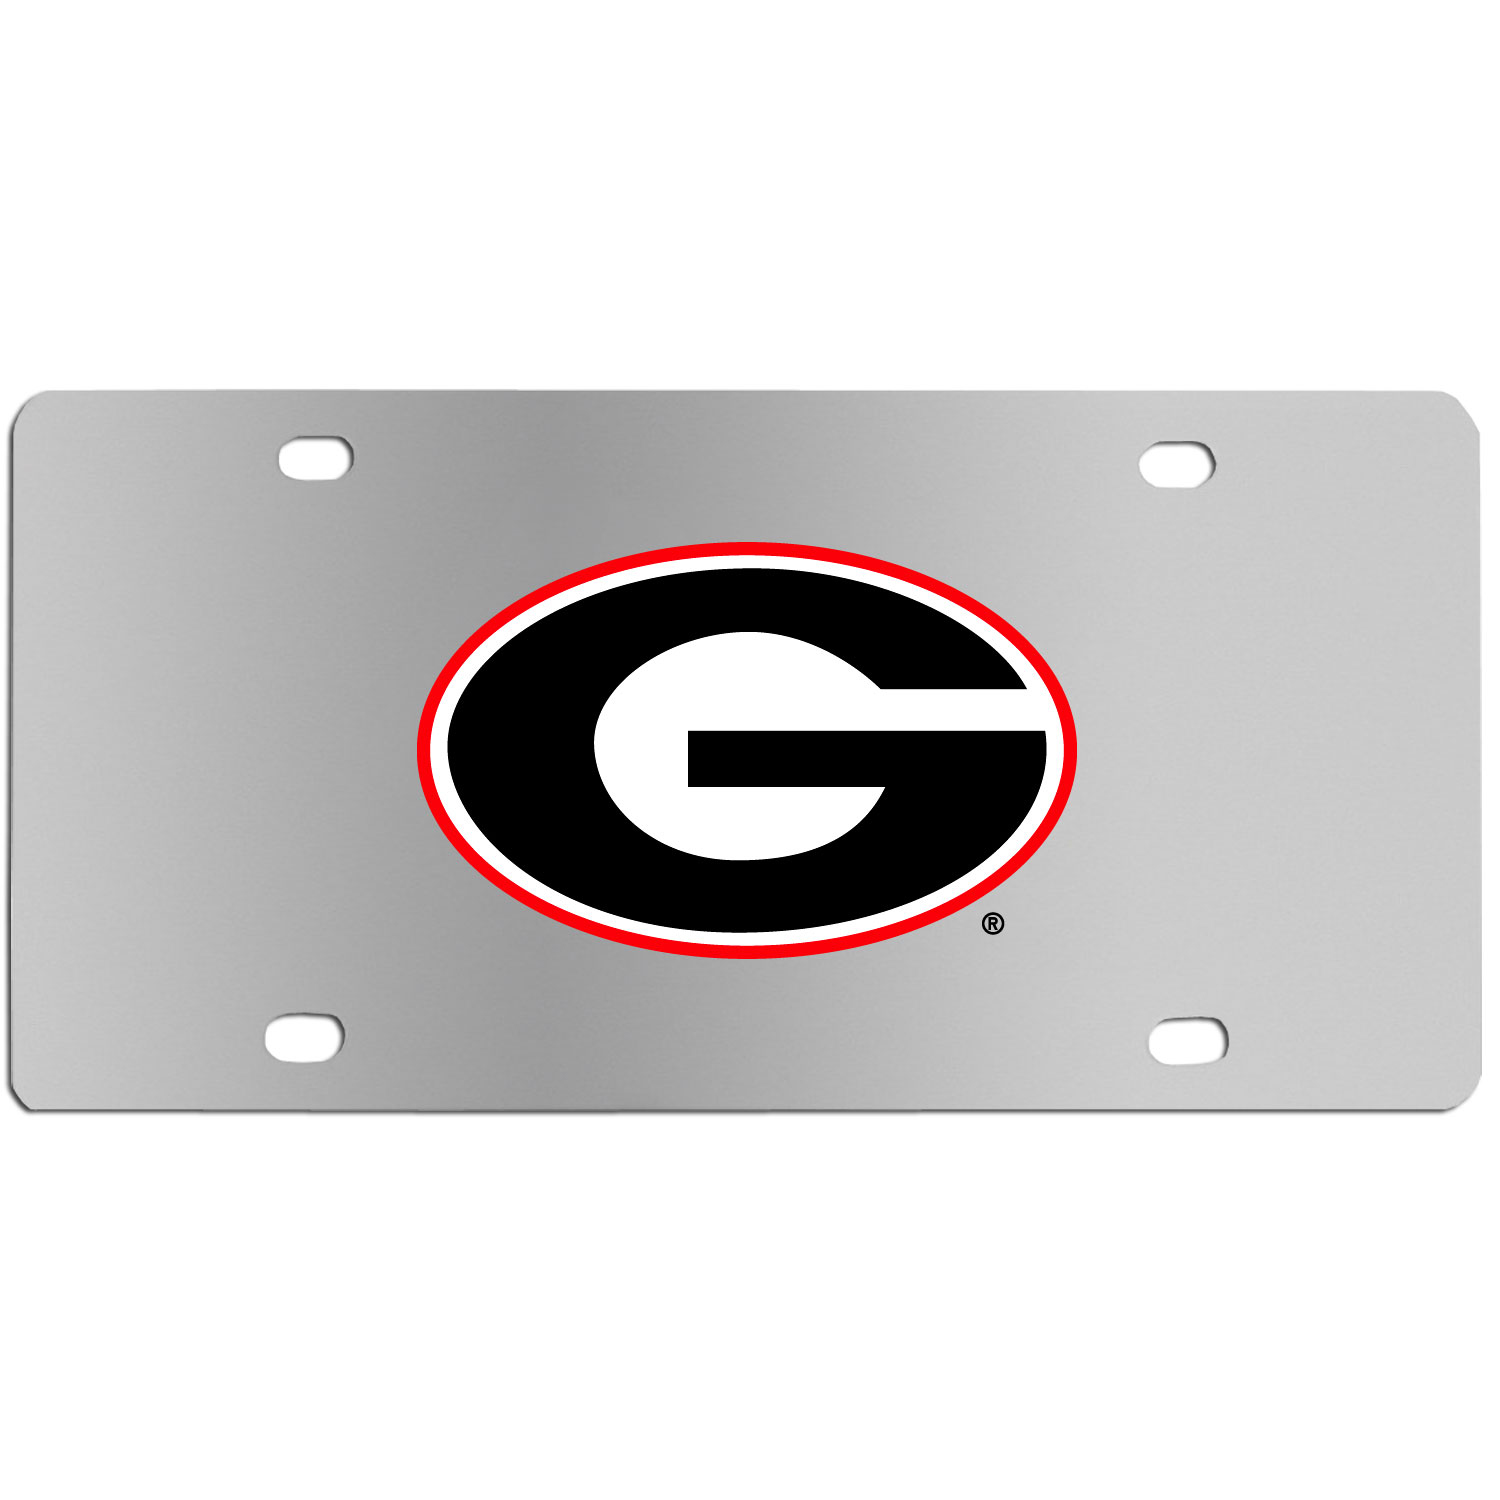 Georgia Bulldogs Steel License Plate Wall Plaque - This high-quality stainless steel license plate features a detailed team logo on a the polished surface. The attractive plate is perfect for wall mounting in your home or office to become the perfect die-hard Georgia Bulldogs fan decor.